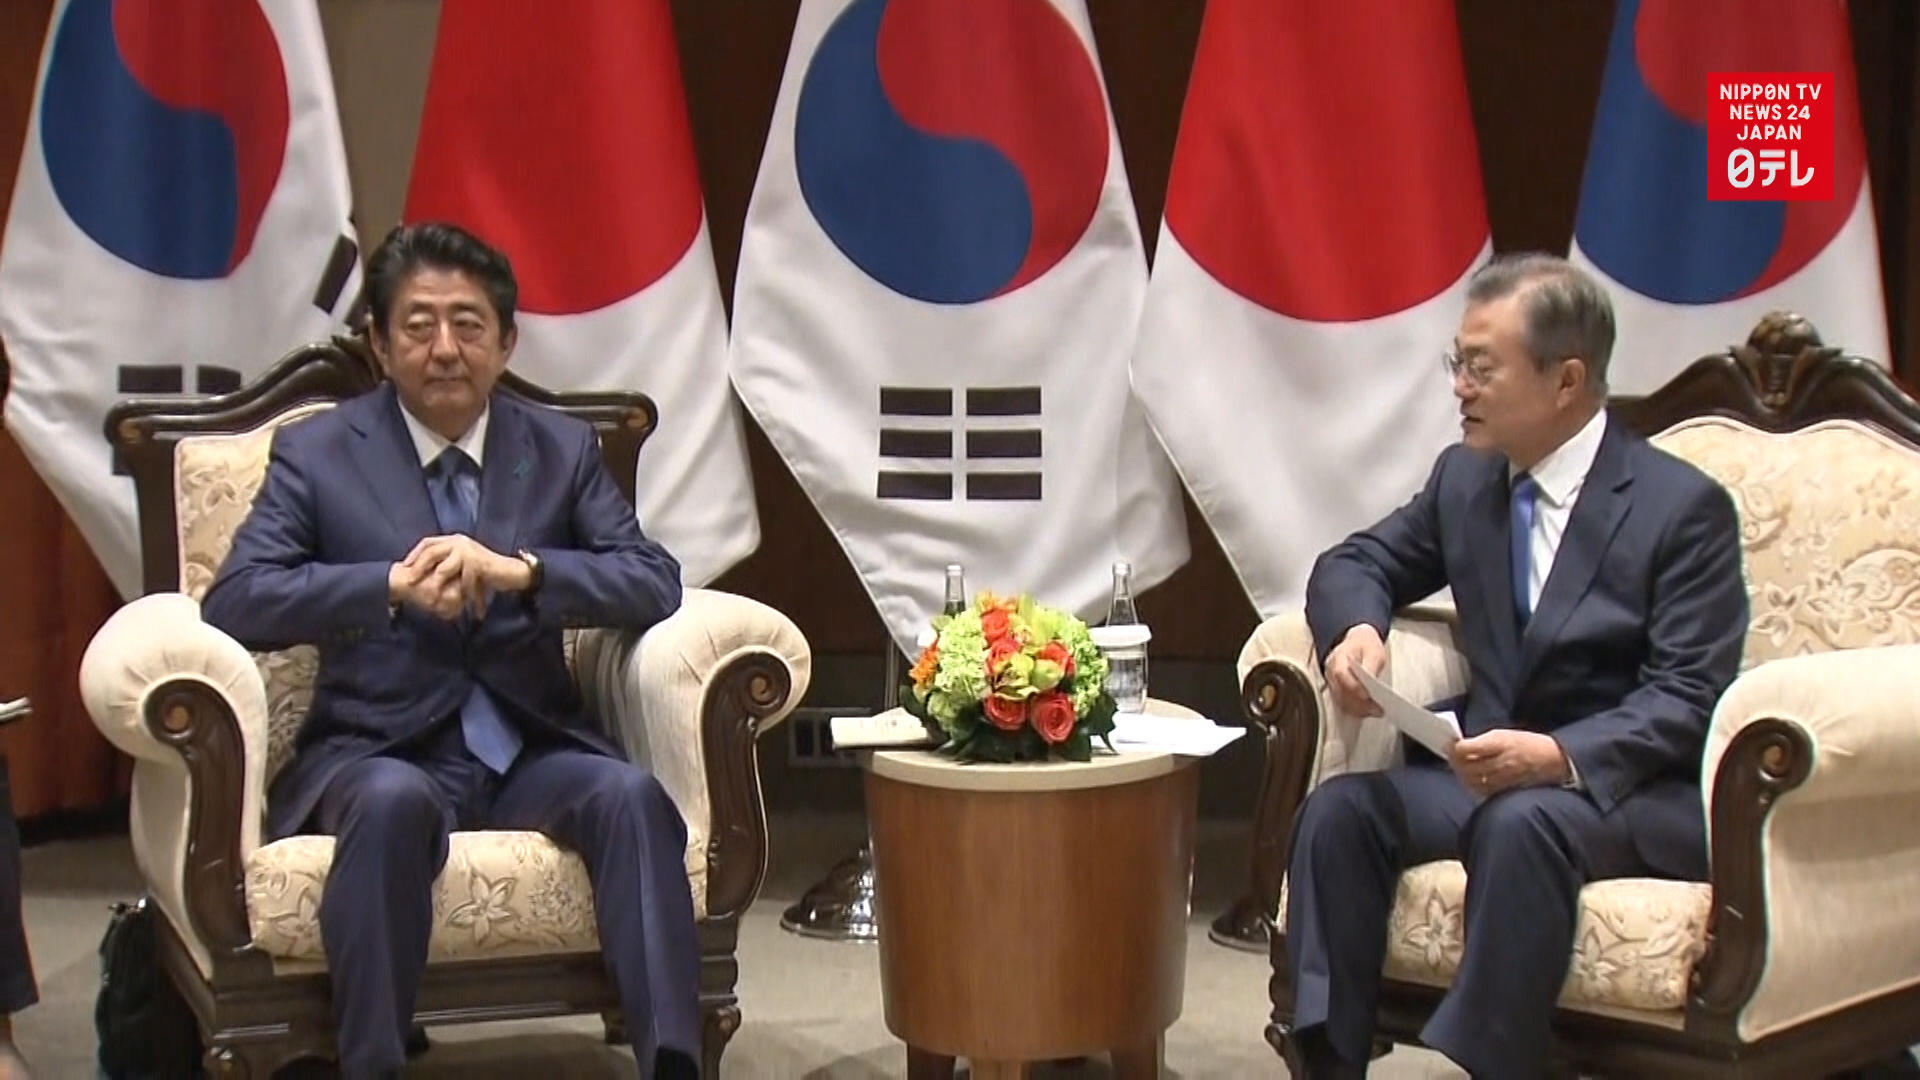 Japan reacts to South Korea scrapping GSOMIA